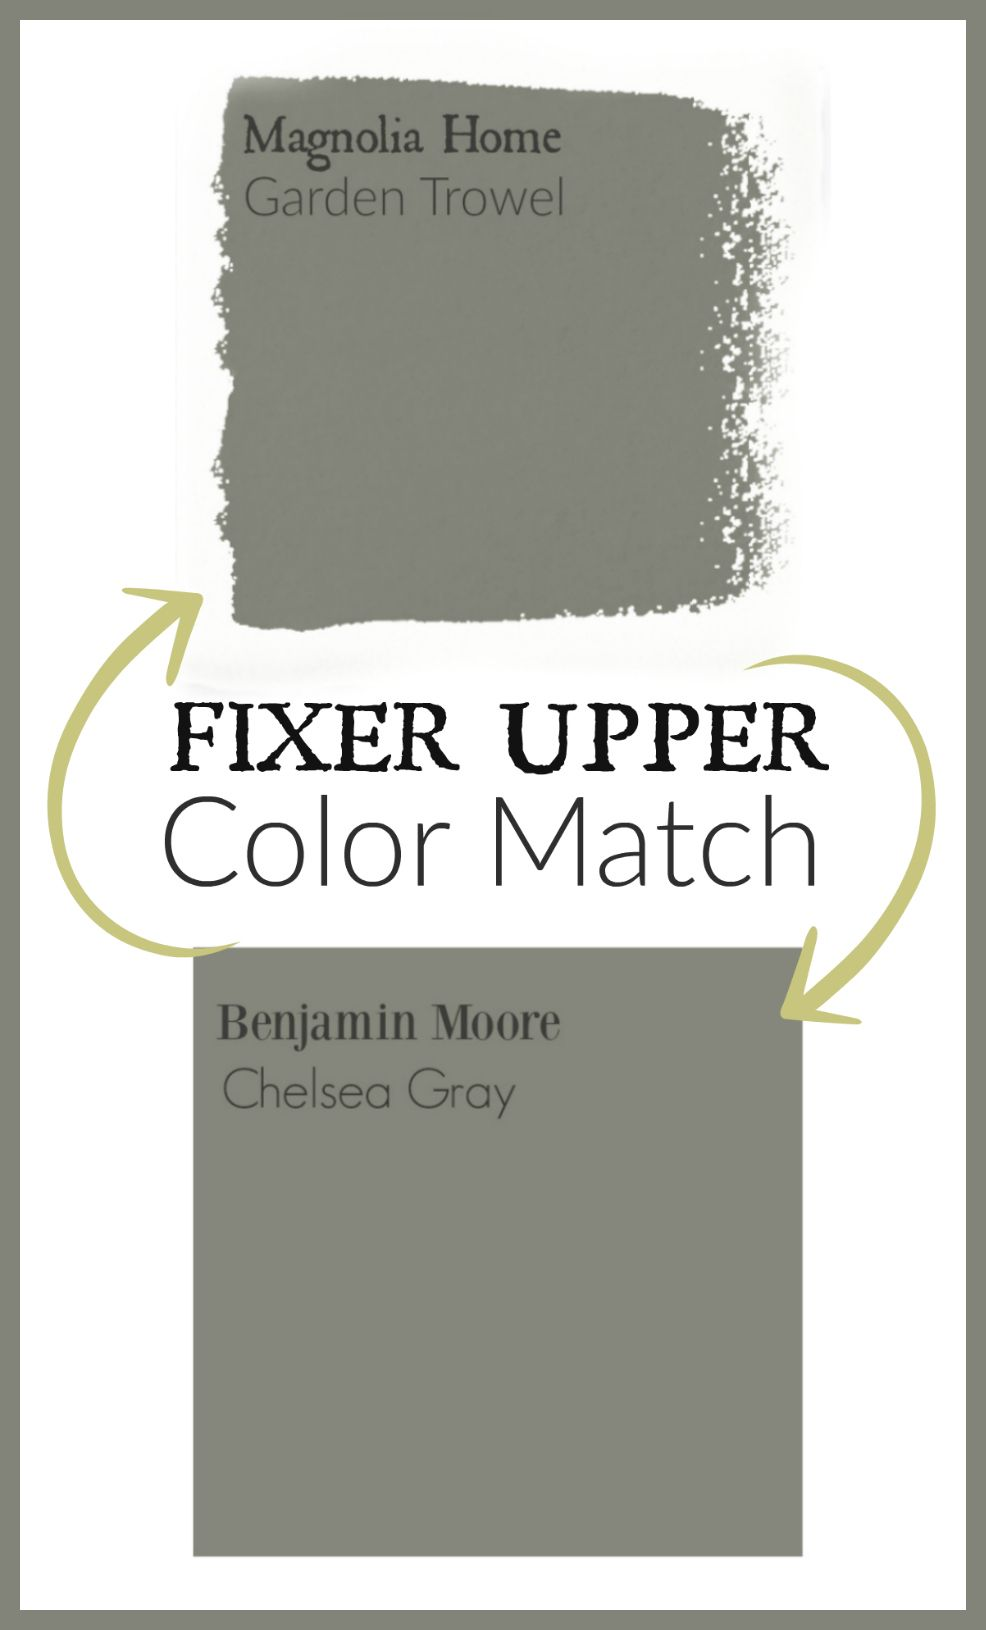 Fixer upper kitchen cabinet paint colors - Fixer Upper Paint Color Matched To Benjamin Moore